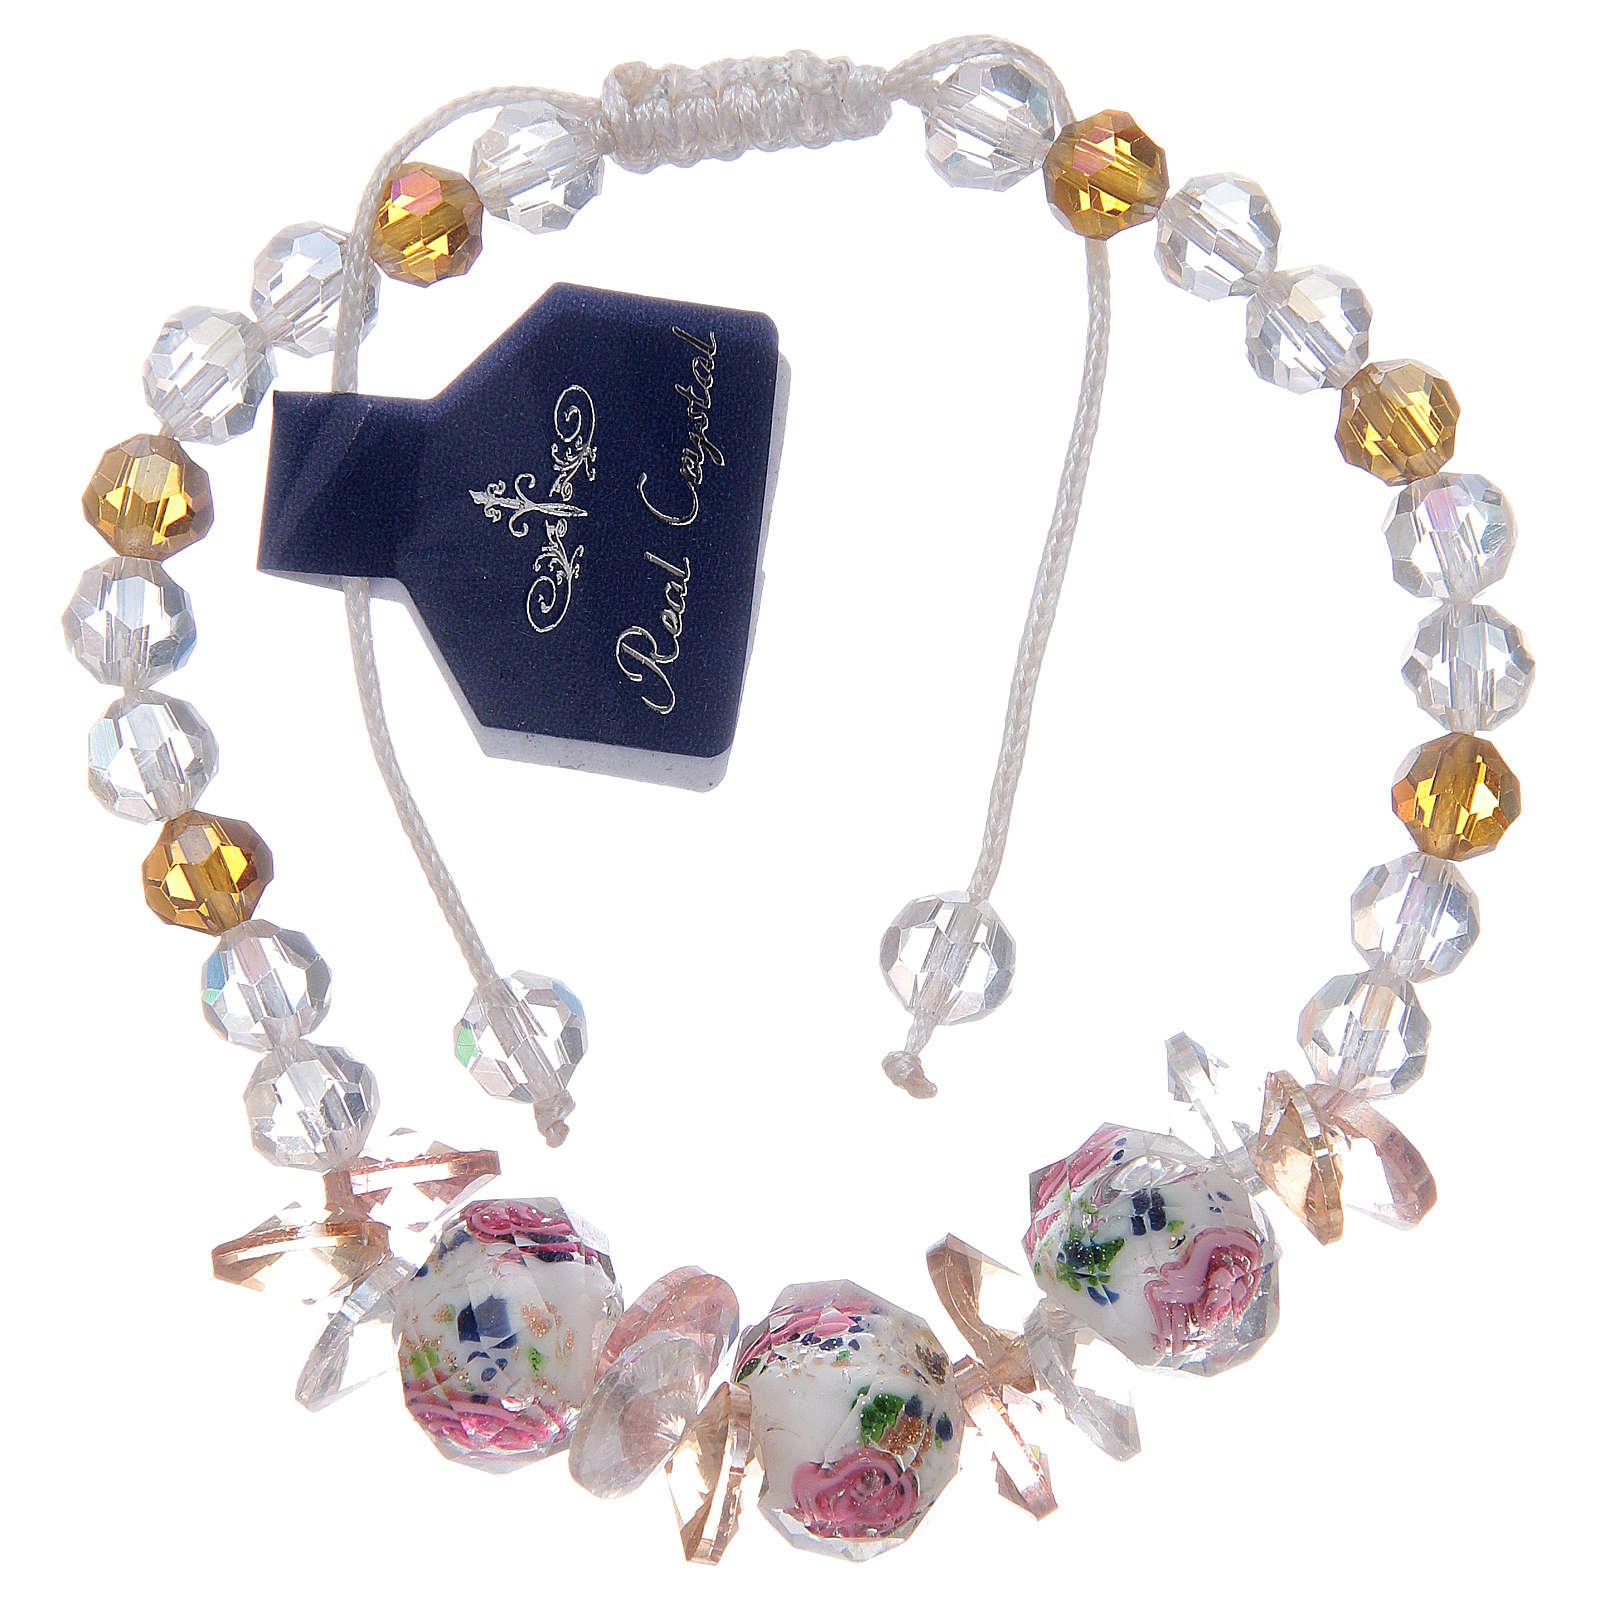 Bracelet with cord, crystal grains and white roses 4